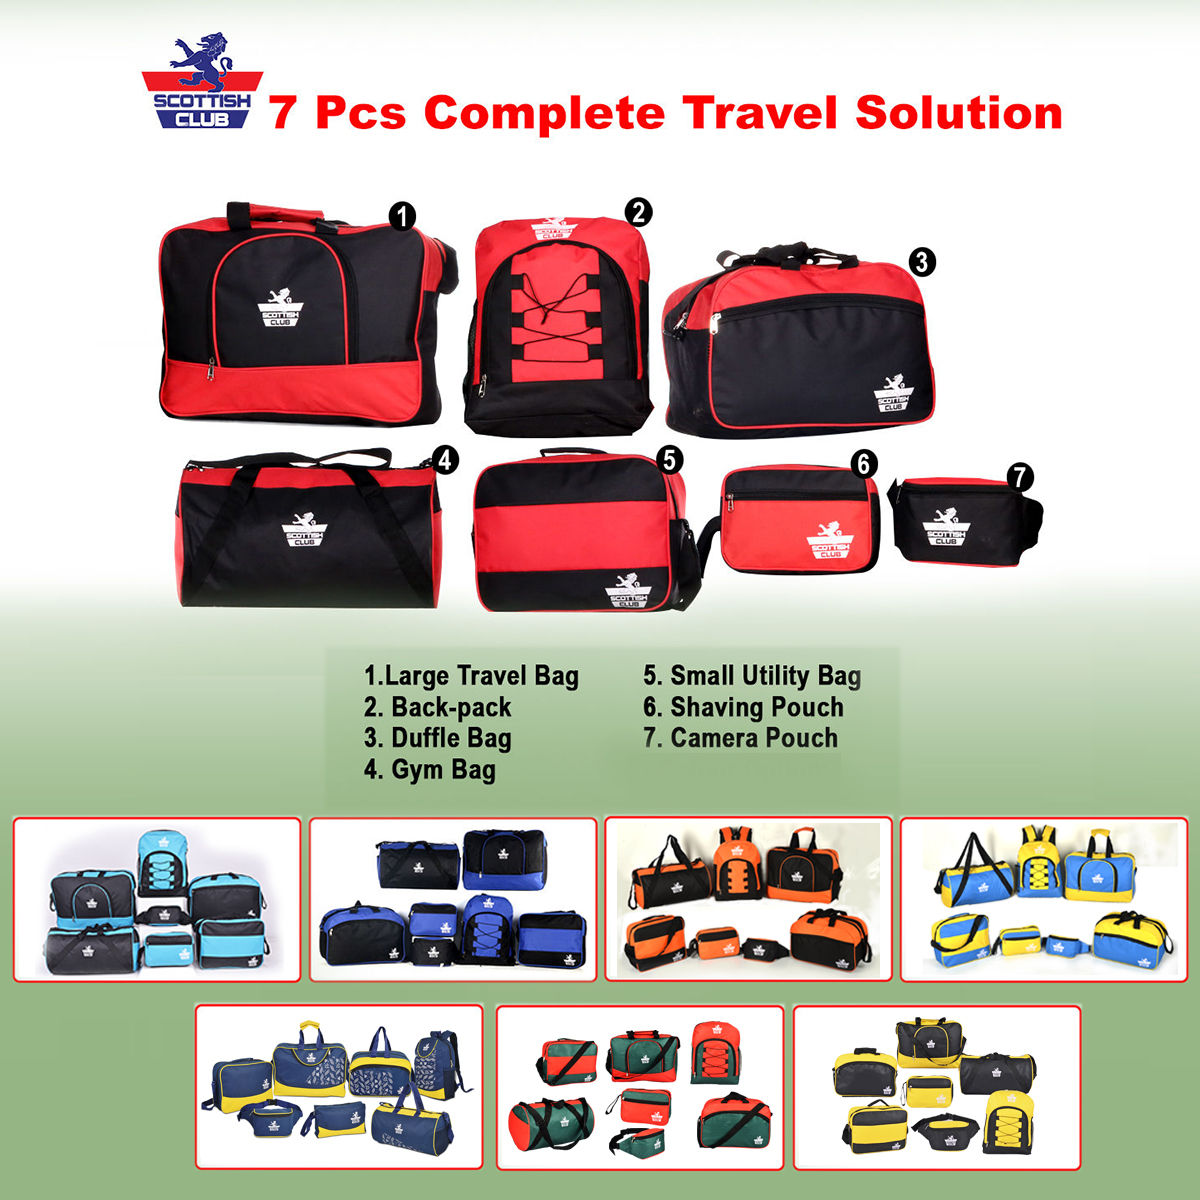 Buy Scottish Club 7 Pcs Complete Travel Solution Online at Best Price in  India on Naaptol.com d558b8291f15f